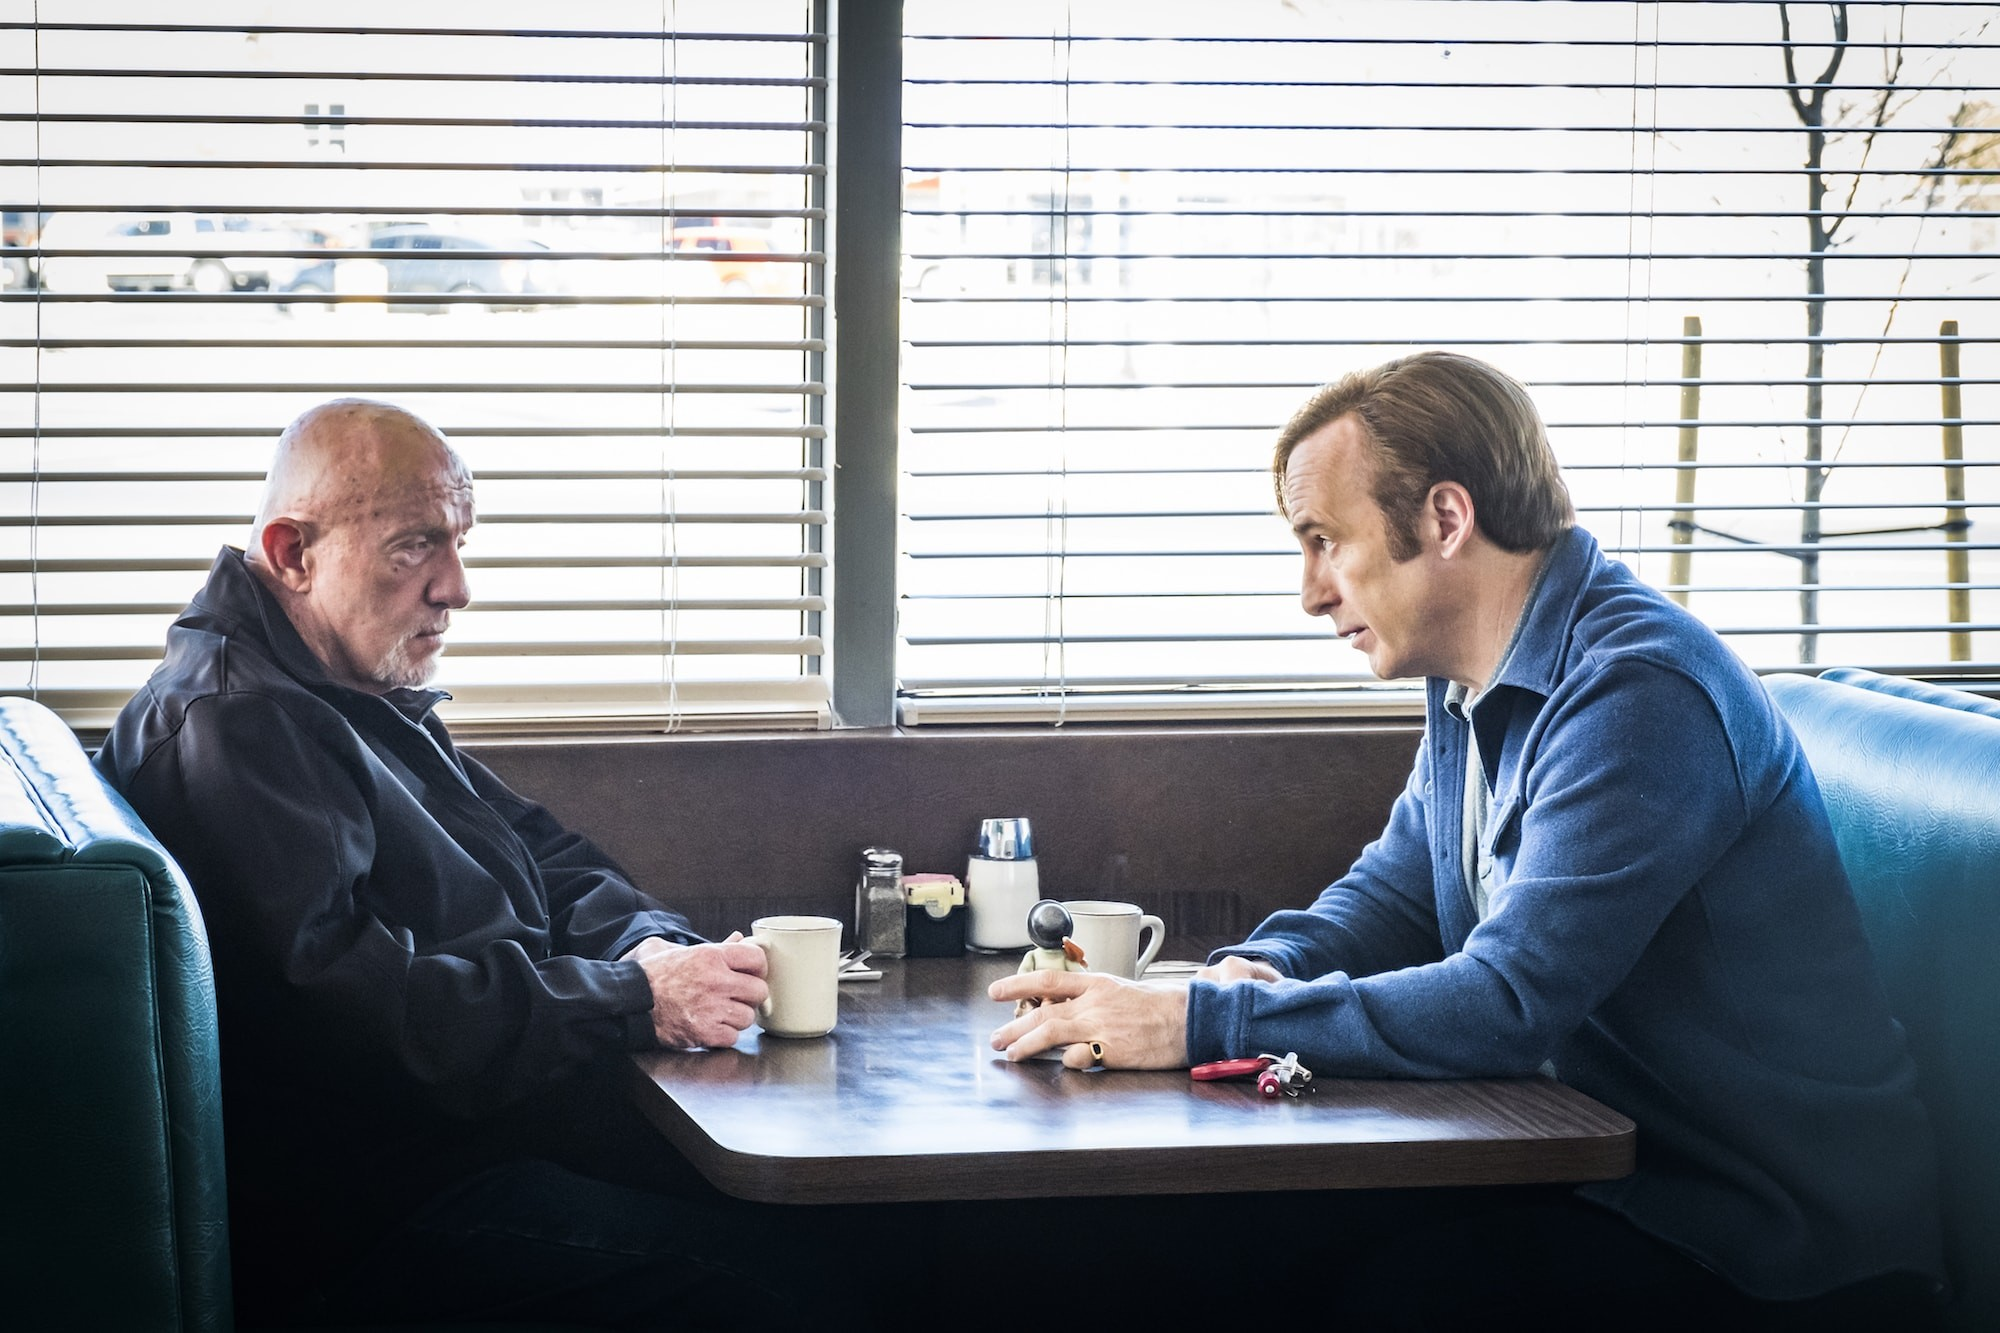 better-call-saul-season-4-images-5-min.jpg